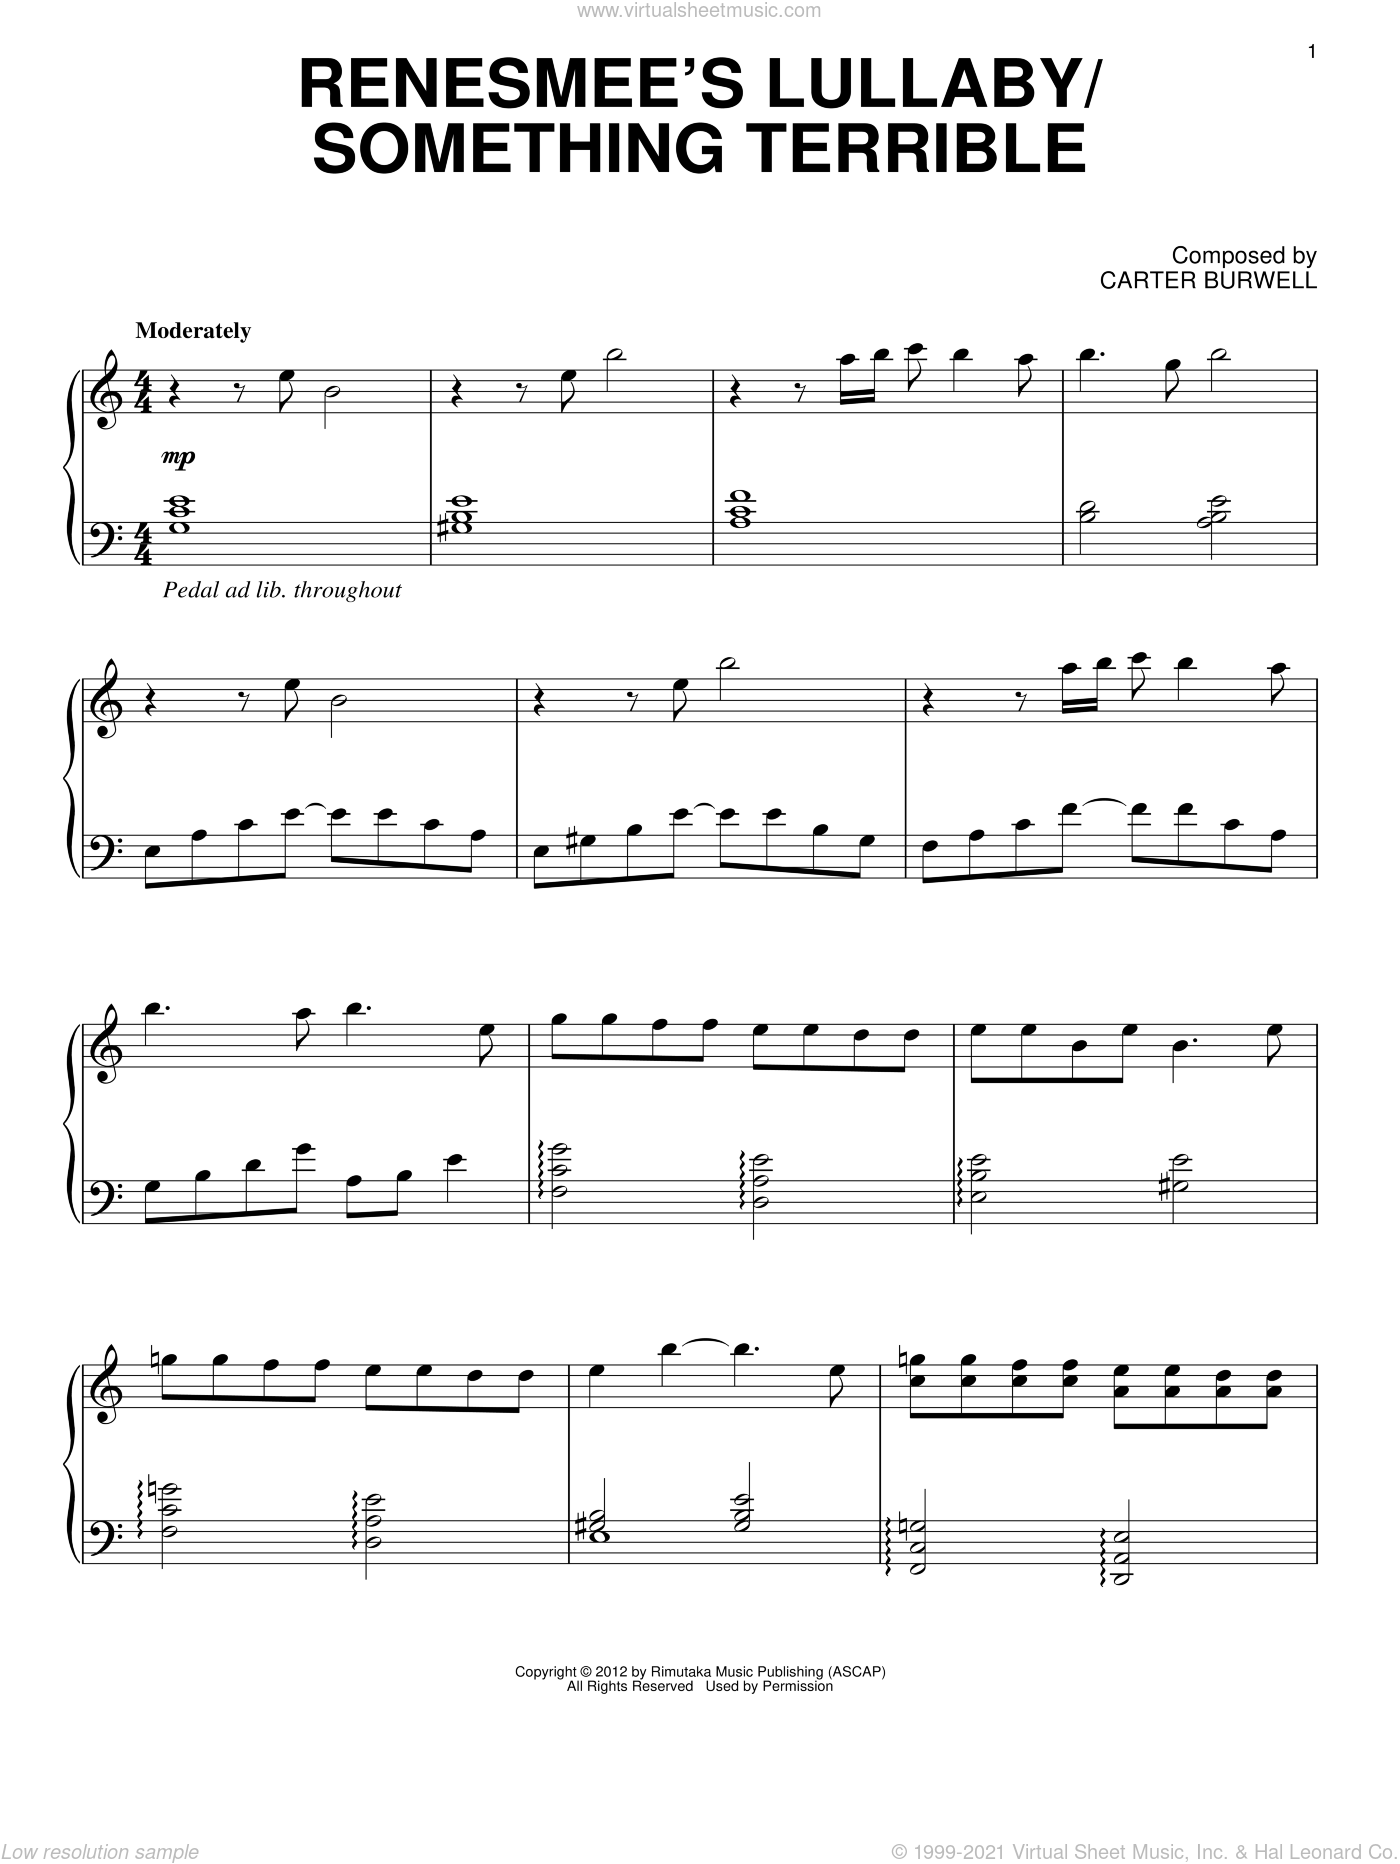 Renesmee's Lullaby/Something Terrible sheet music for piano solo by Carter Burwell and Twilight: Breaking Dawn Part 2 (Movie), intermediate. Score Image Preview.